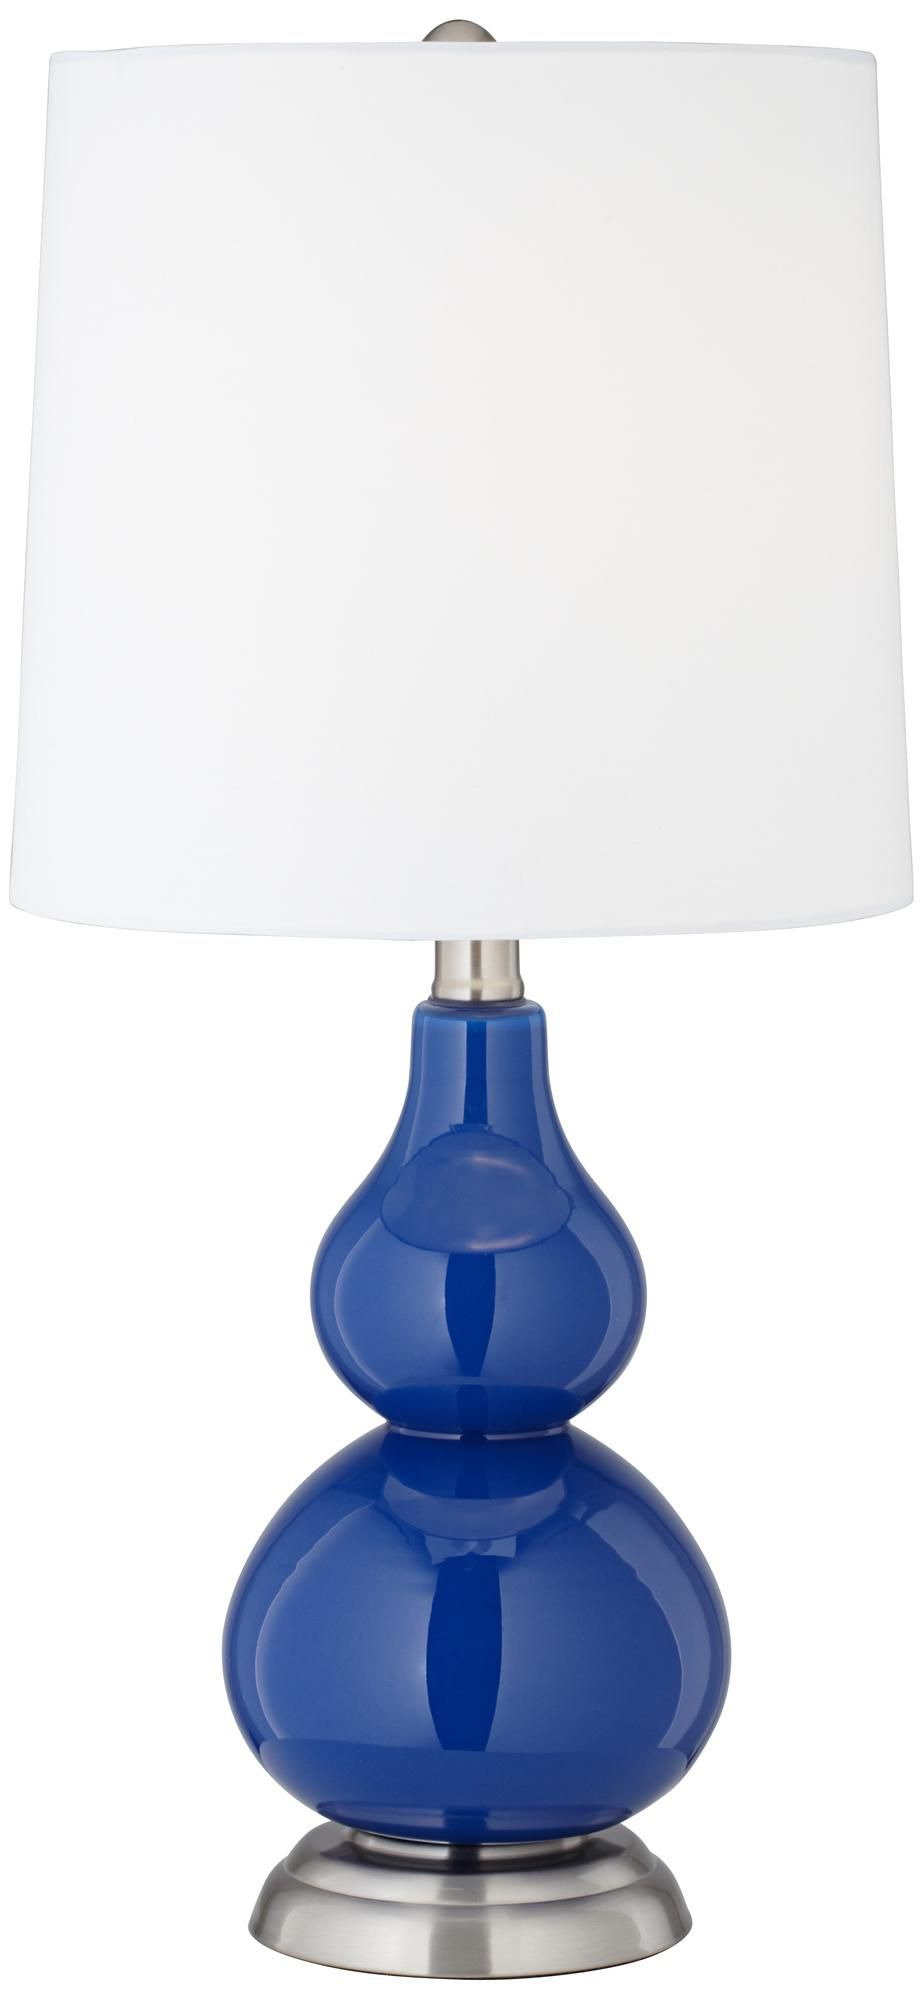 royal blue room small gourd accent table lamp first employee mirrored furniture coffee modern home decor ideas concrete outdoor bunnings round oak side kitchen and chairs set